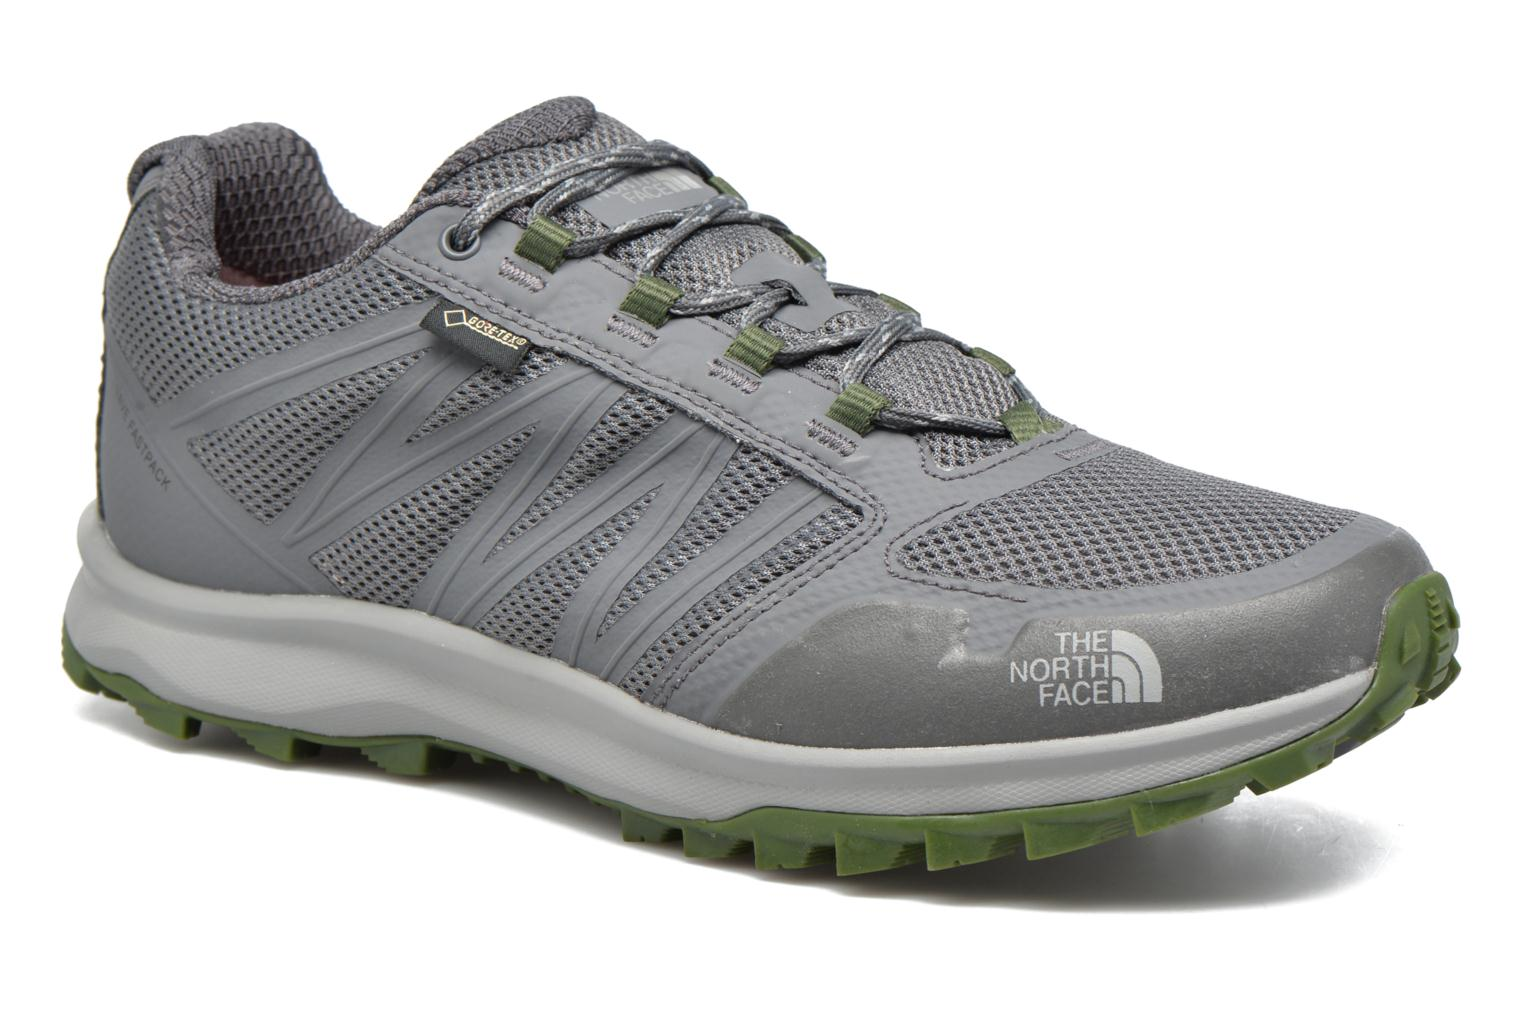 Chaussures de sport The North Face Litewave Fastpack GTX Gris vue détail/paire